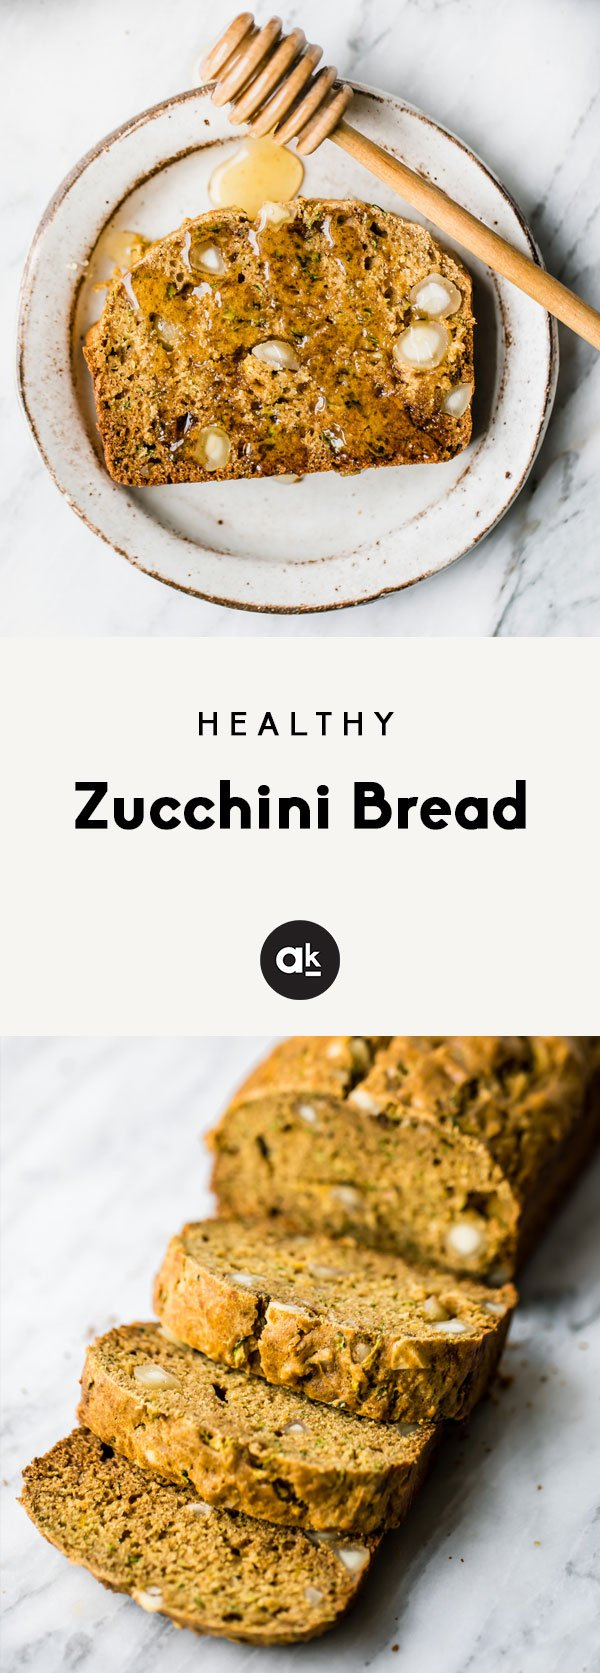 collage of healthy zucchini bread sliced